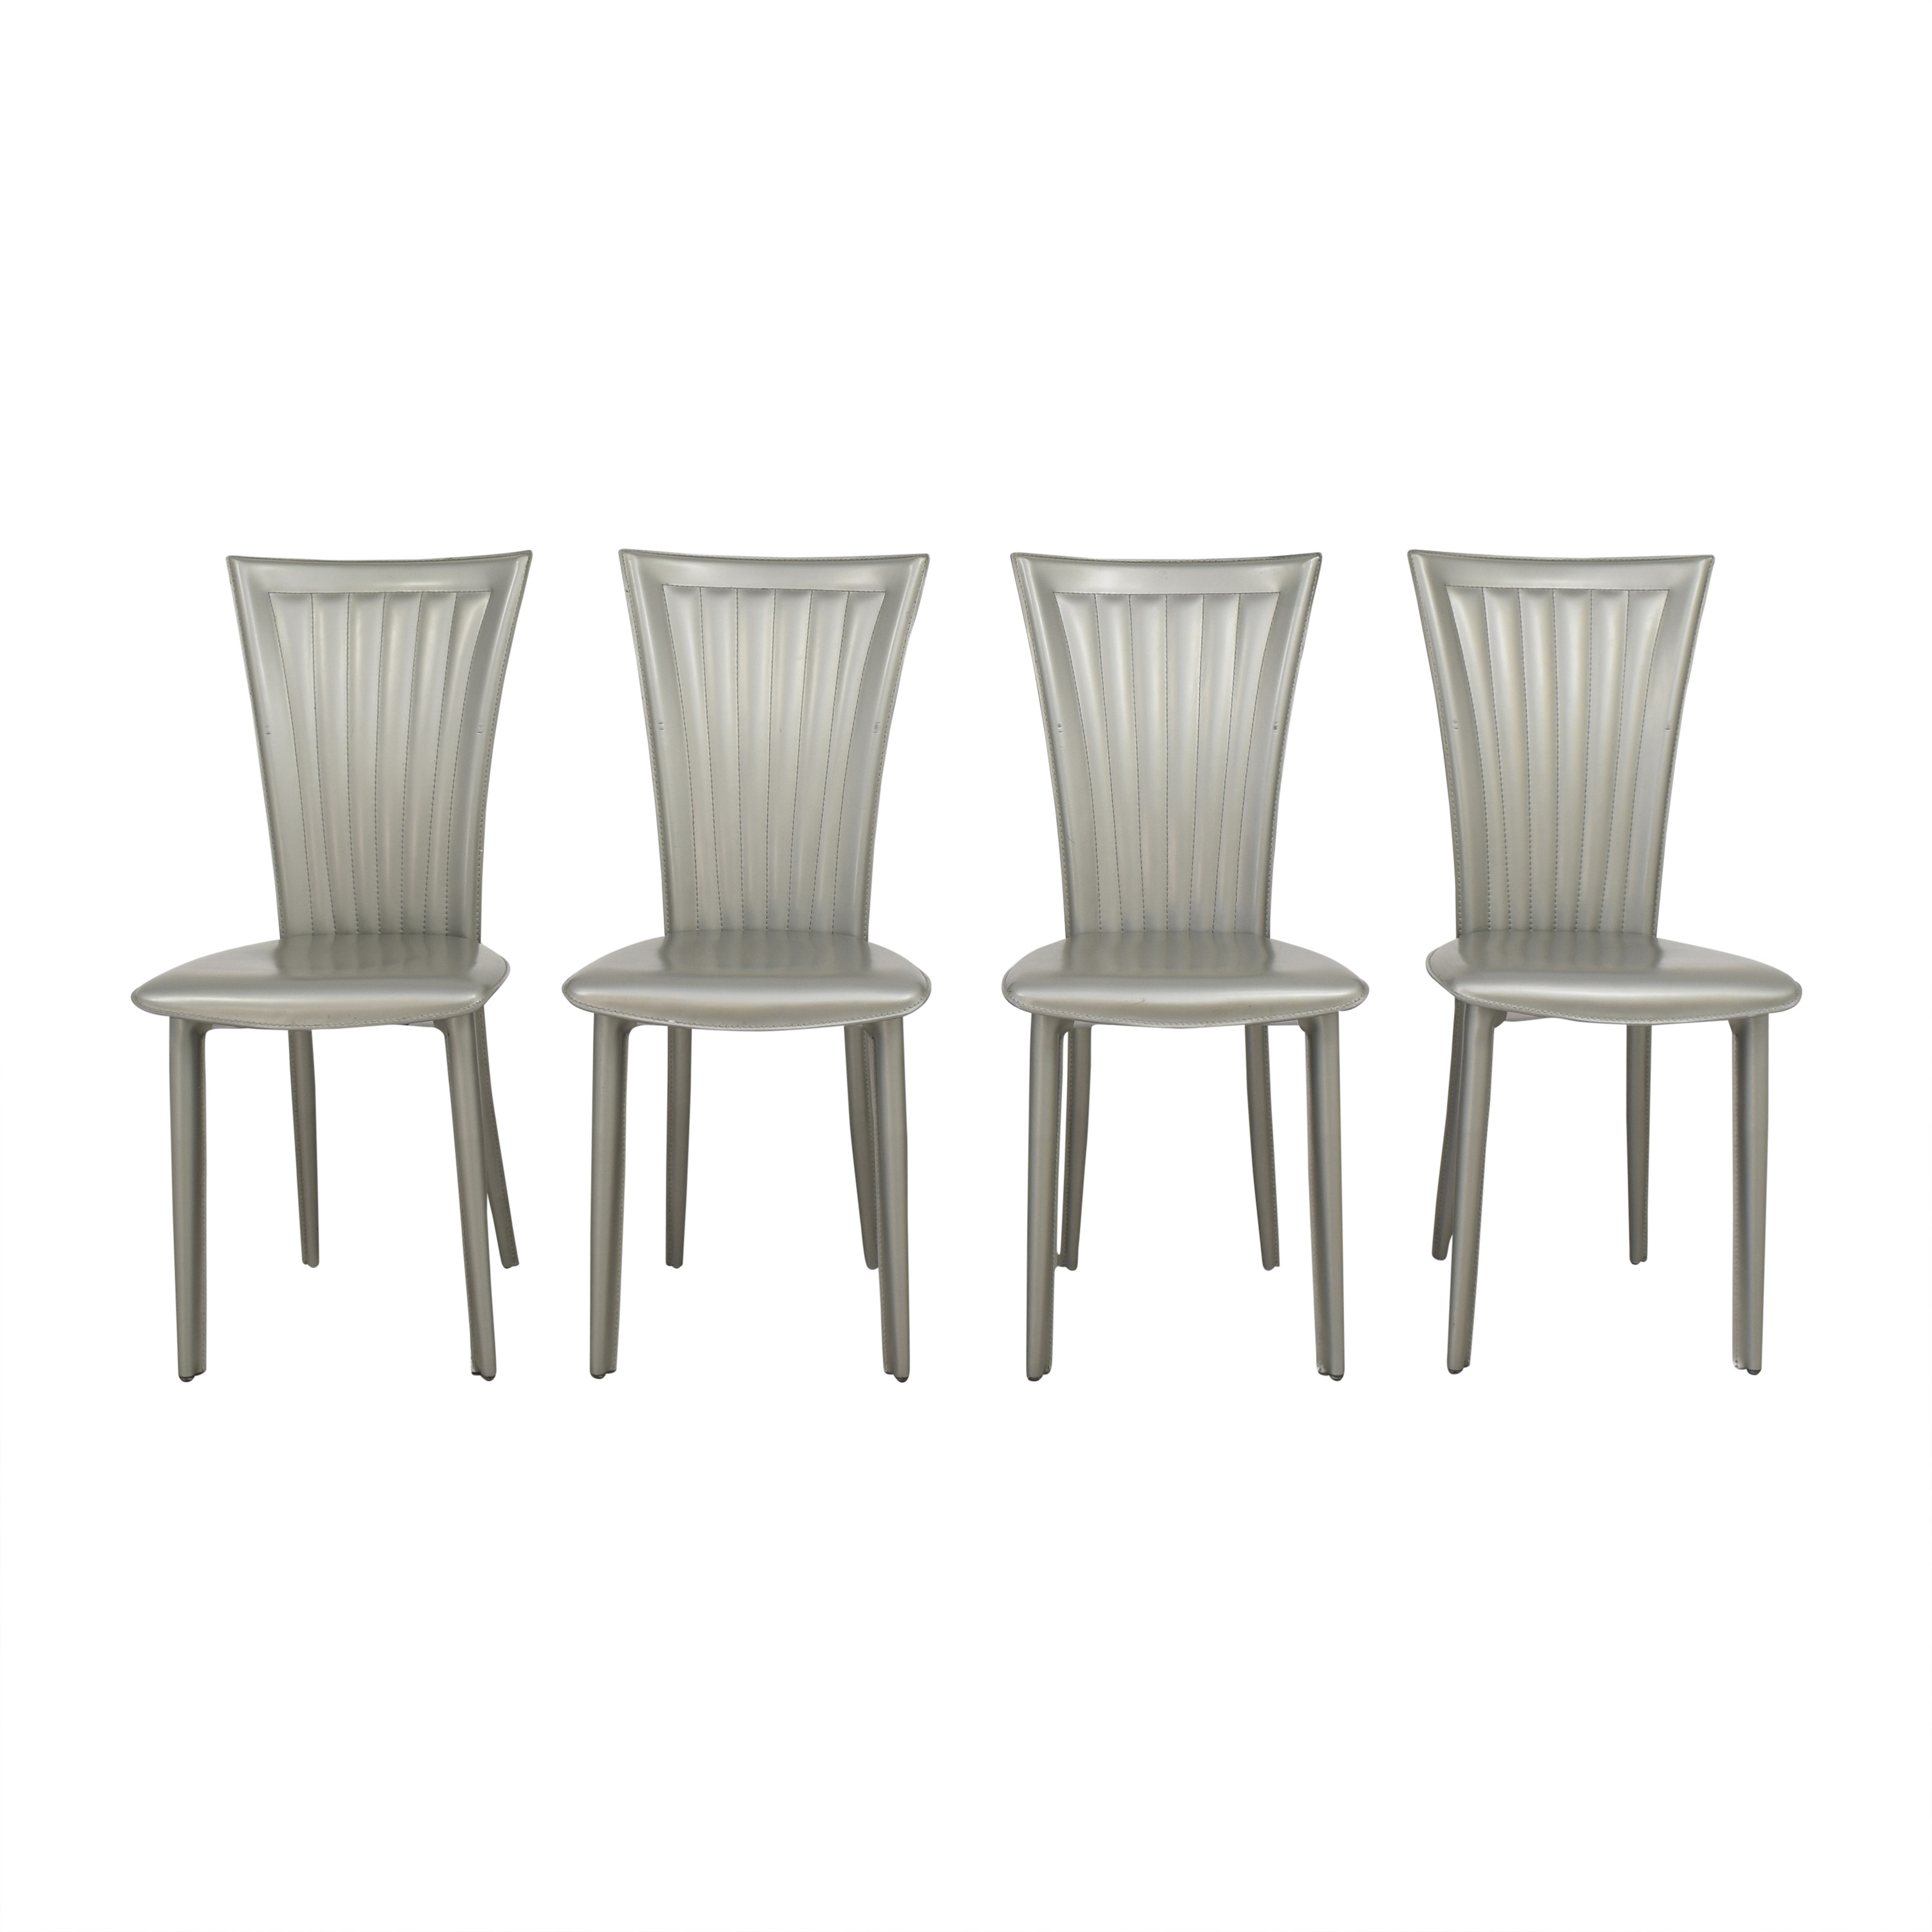 Maurice Villency Maurice Villency Dining Chairs on sale